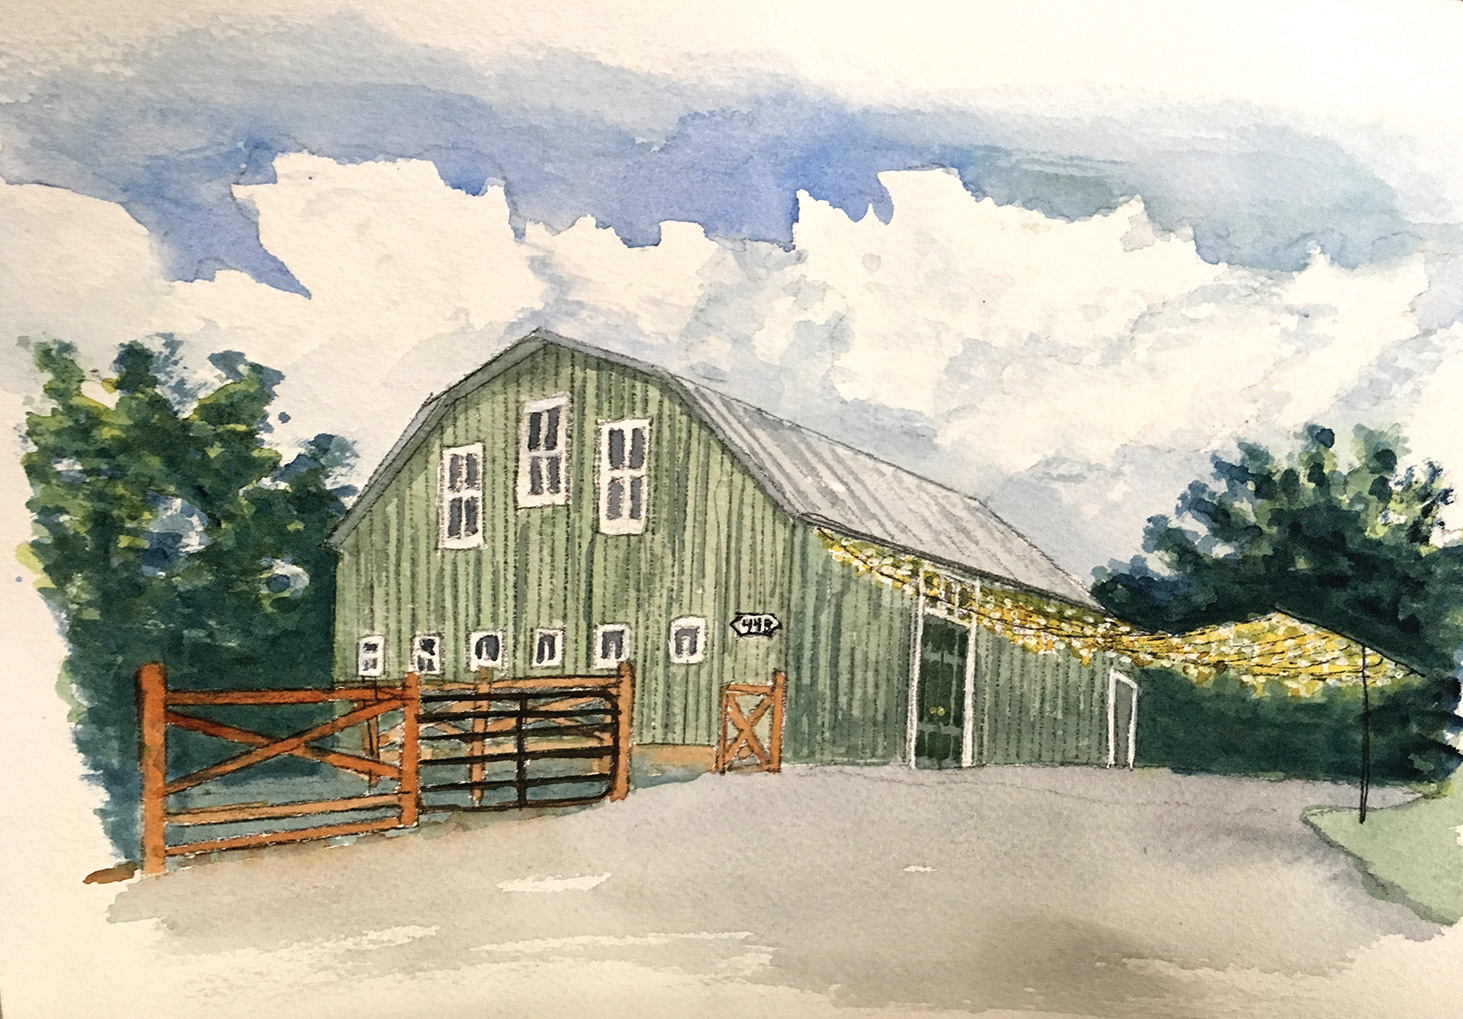 Green Barn by Don